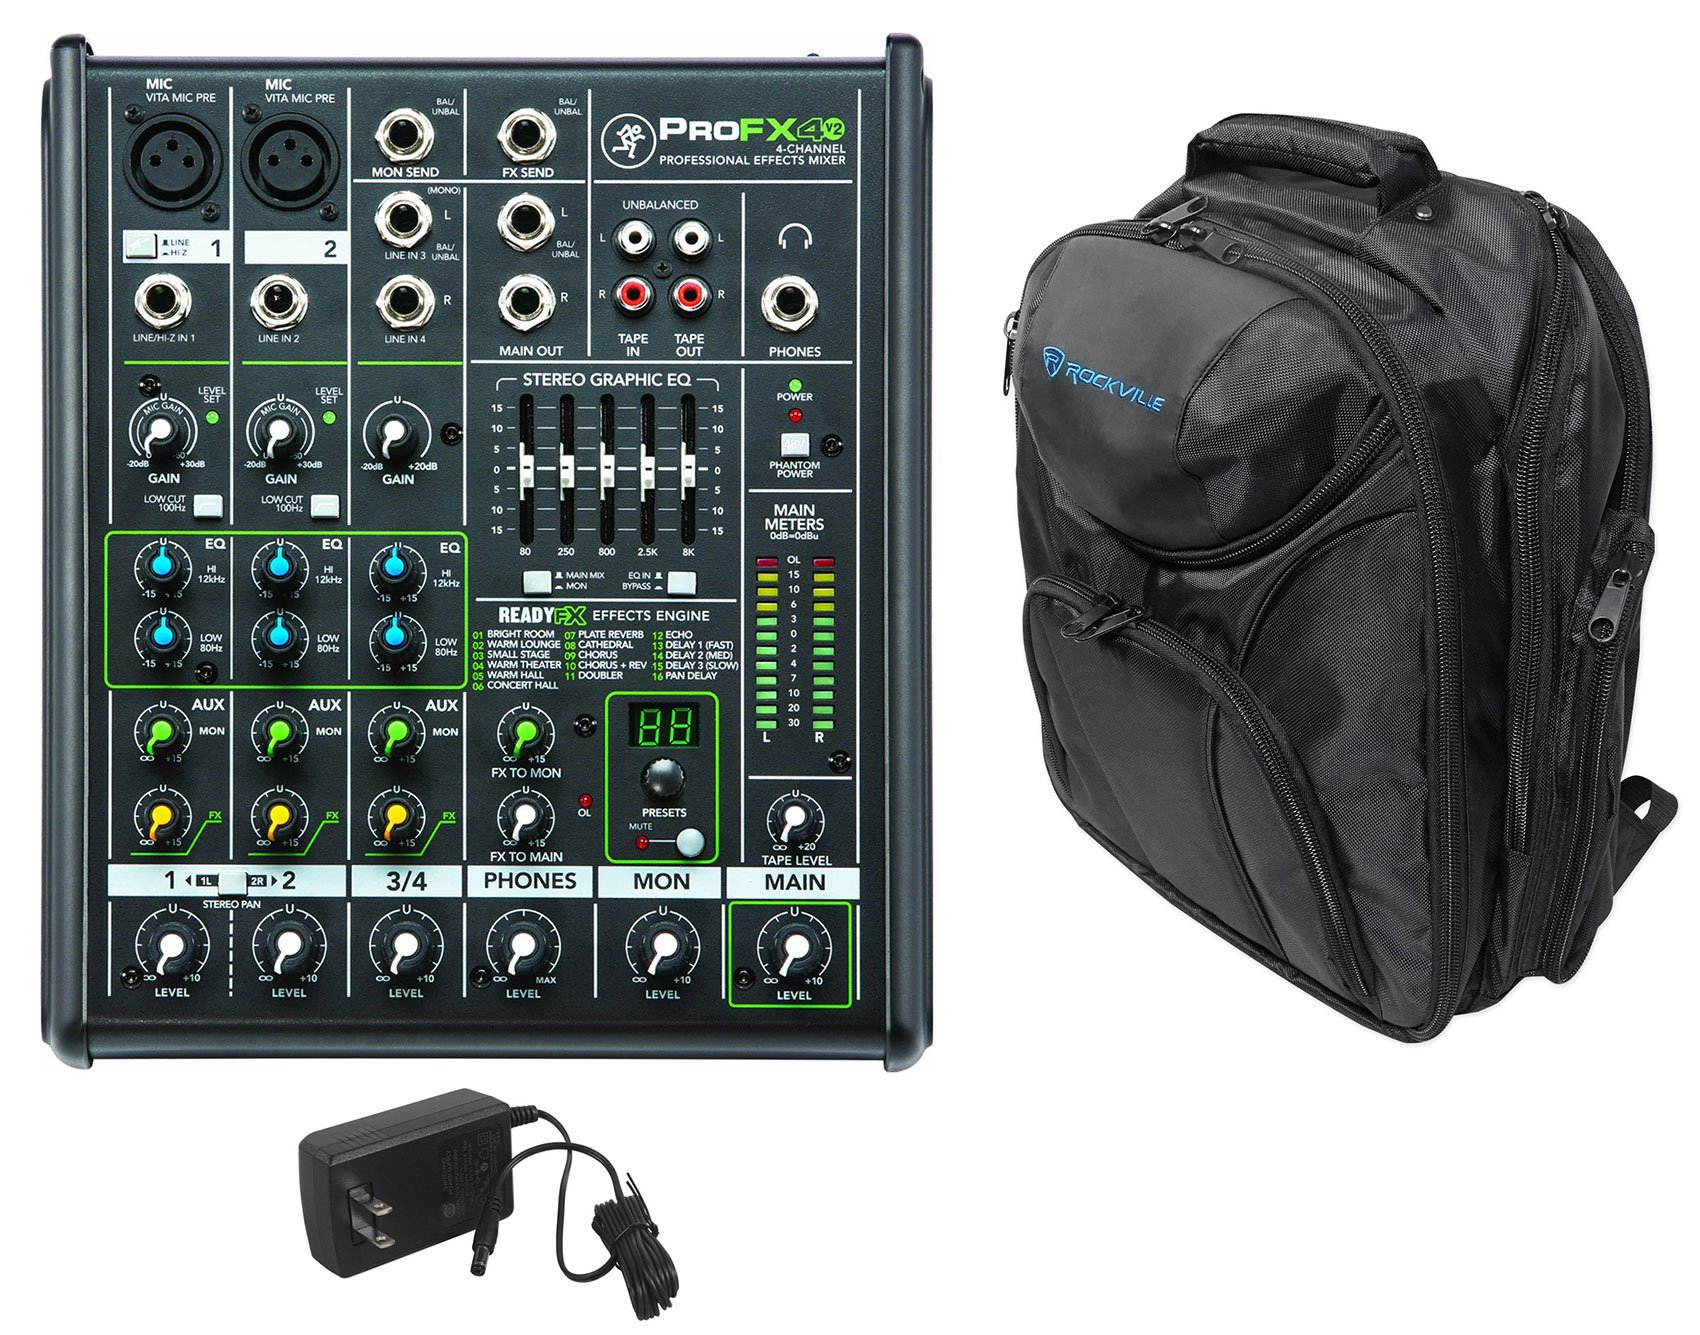 Mackie PROFX4v2 Pro 4 Channel Compact Mixer w Effects PROFX4 V2+Backpack Bag